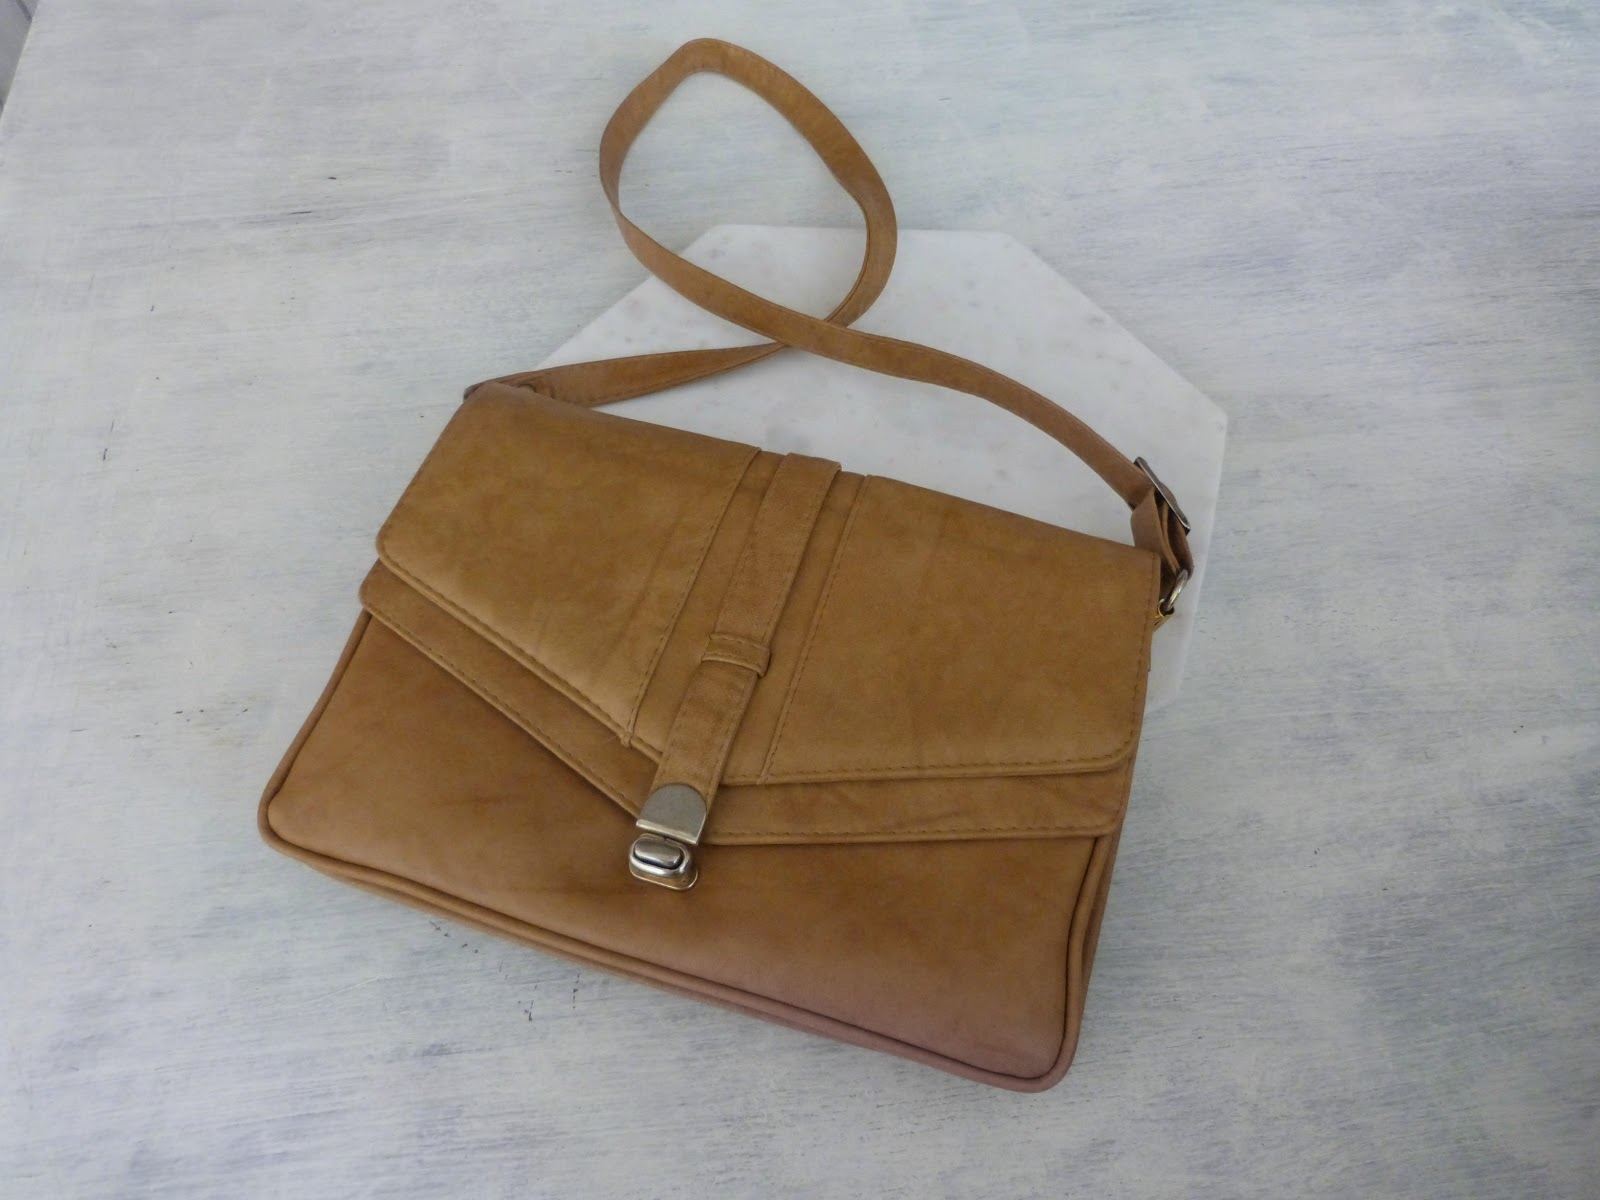 Thrift shopping guide: leather bags